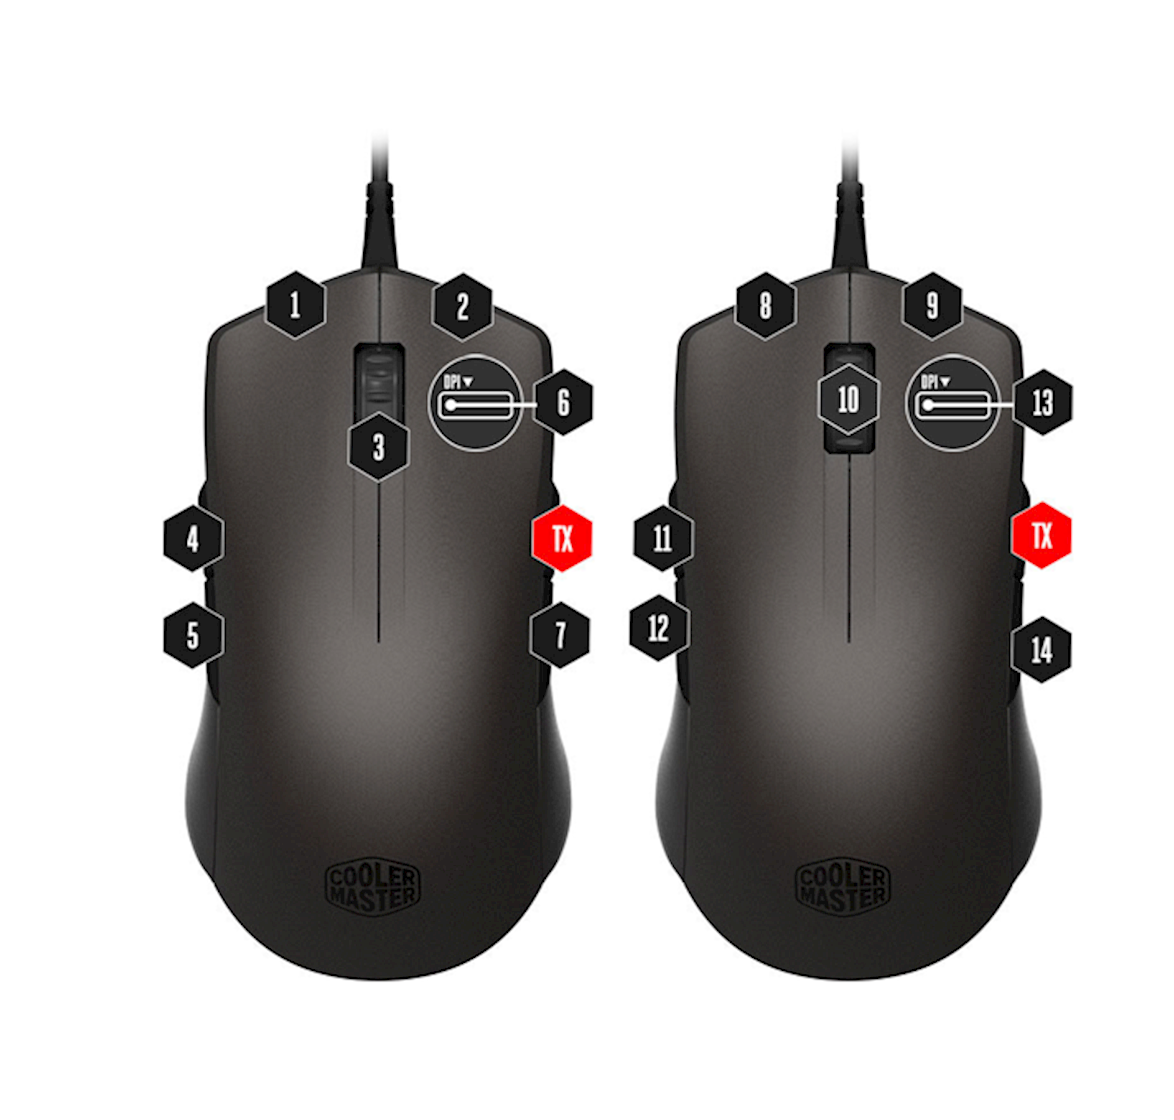 Our Mouse Buttons Go Both Ways